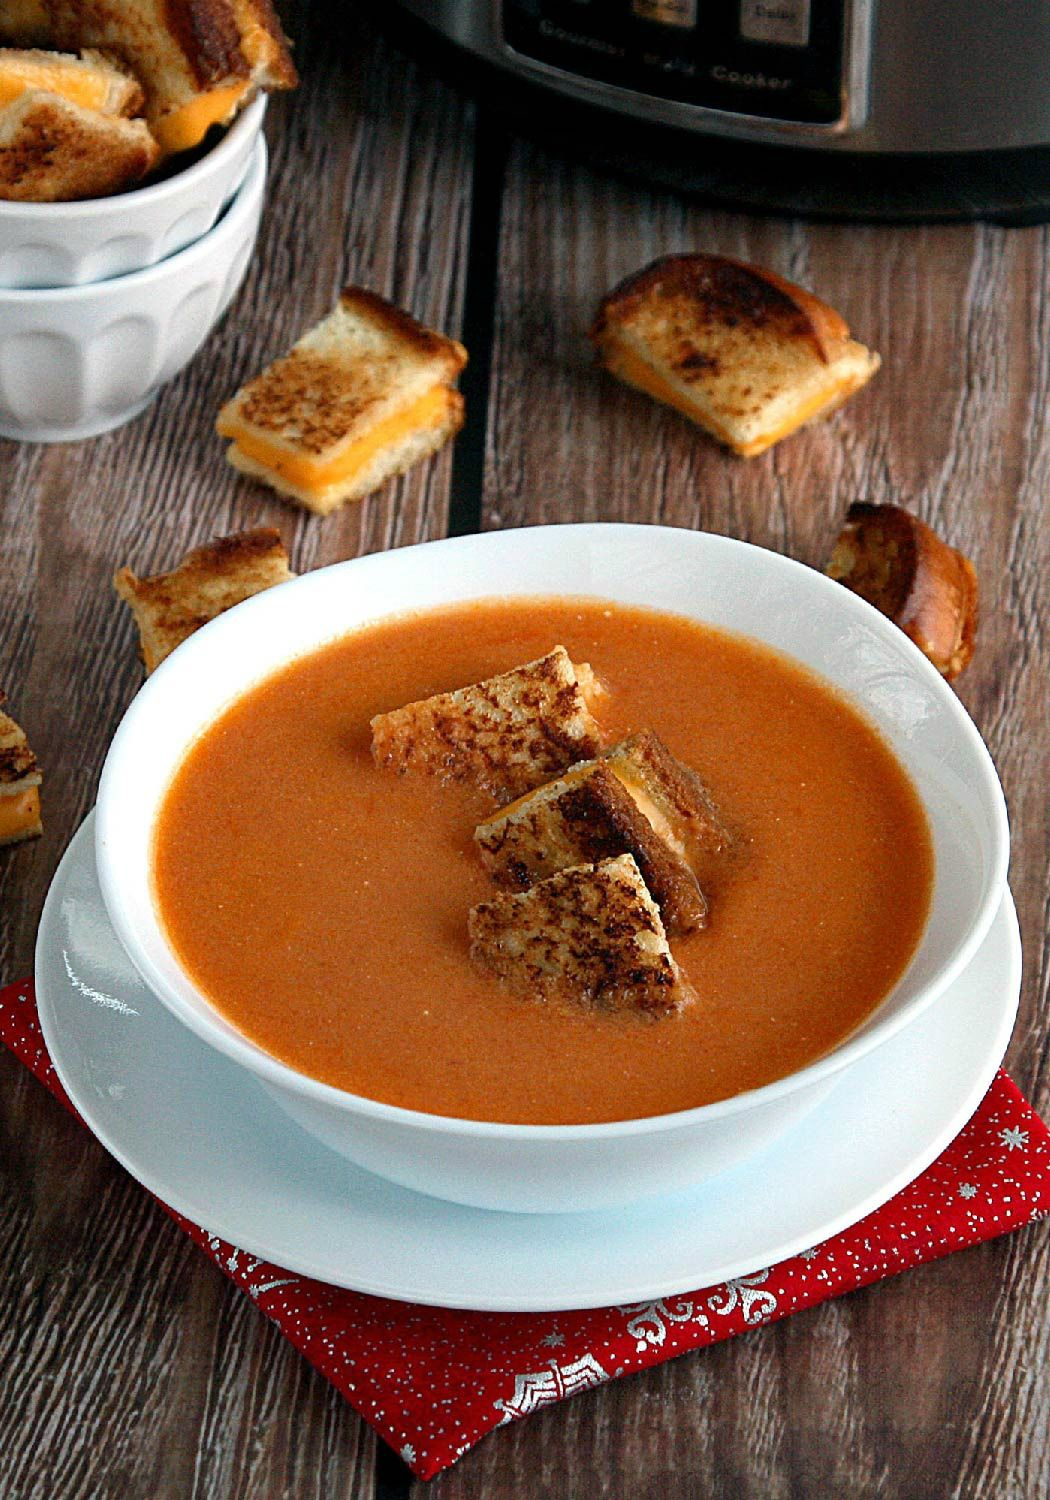 Slow Cooker Tomato Soup with Grilled Cheese Croutons – Slow cooker-simple, this easy soup is almost too good to be true. Recipe and photo by blogger, Jess Gonzalez, of www.onsugarmountain.com.